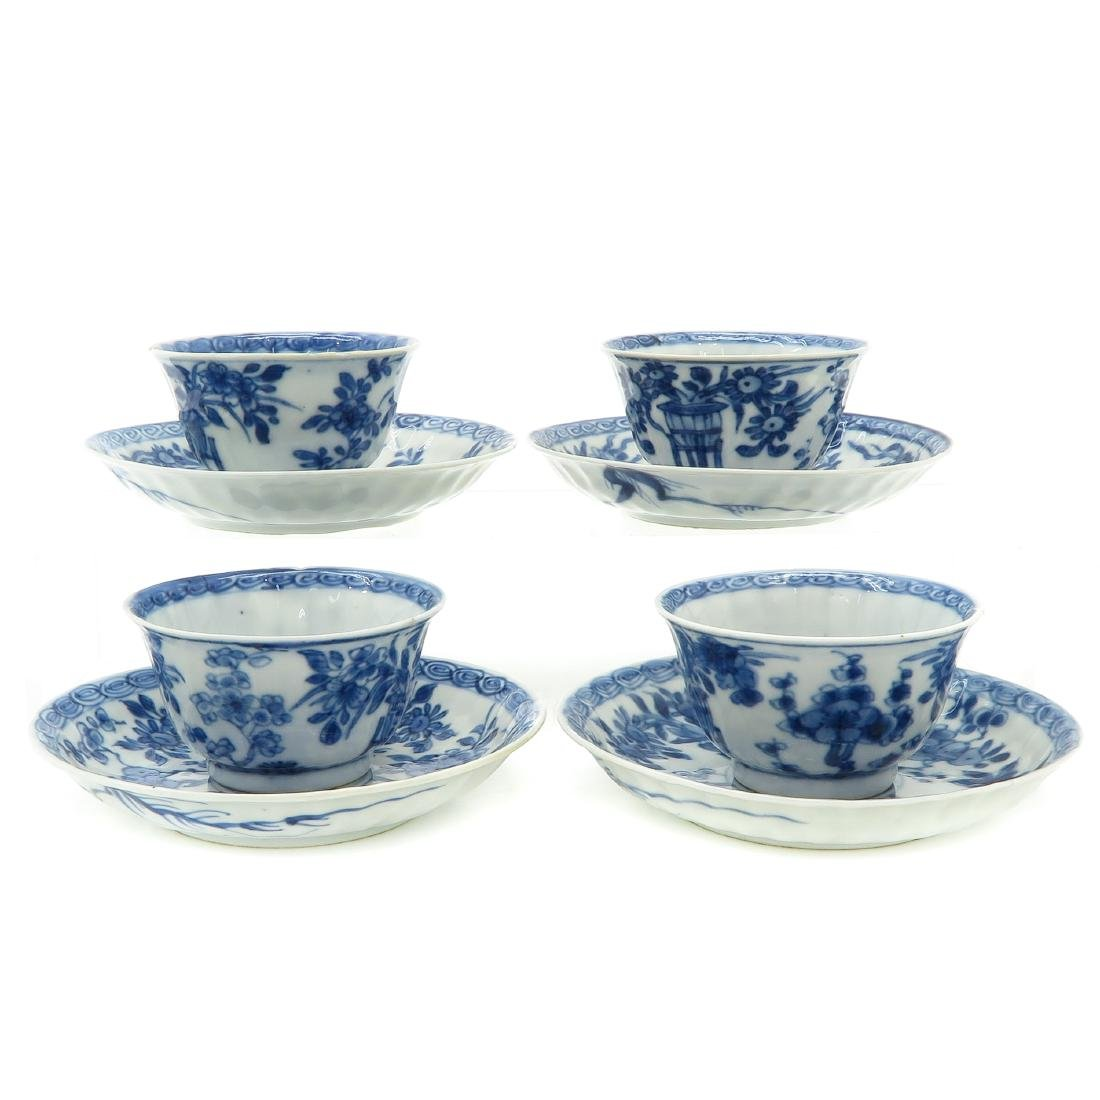 Lot of 4 Cups and Saucers - 2